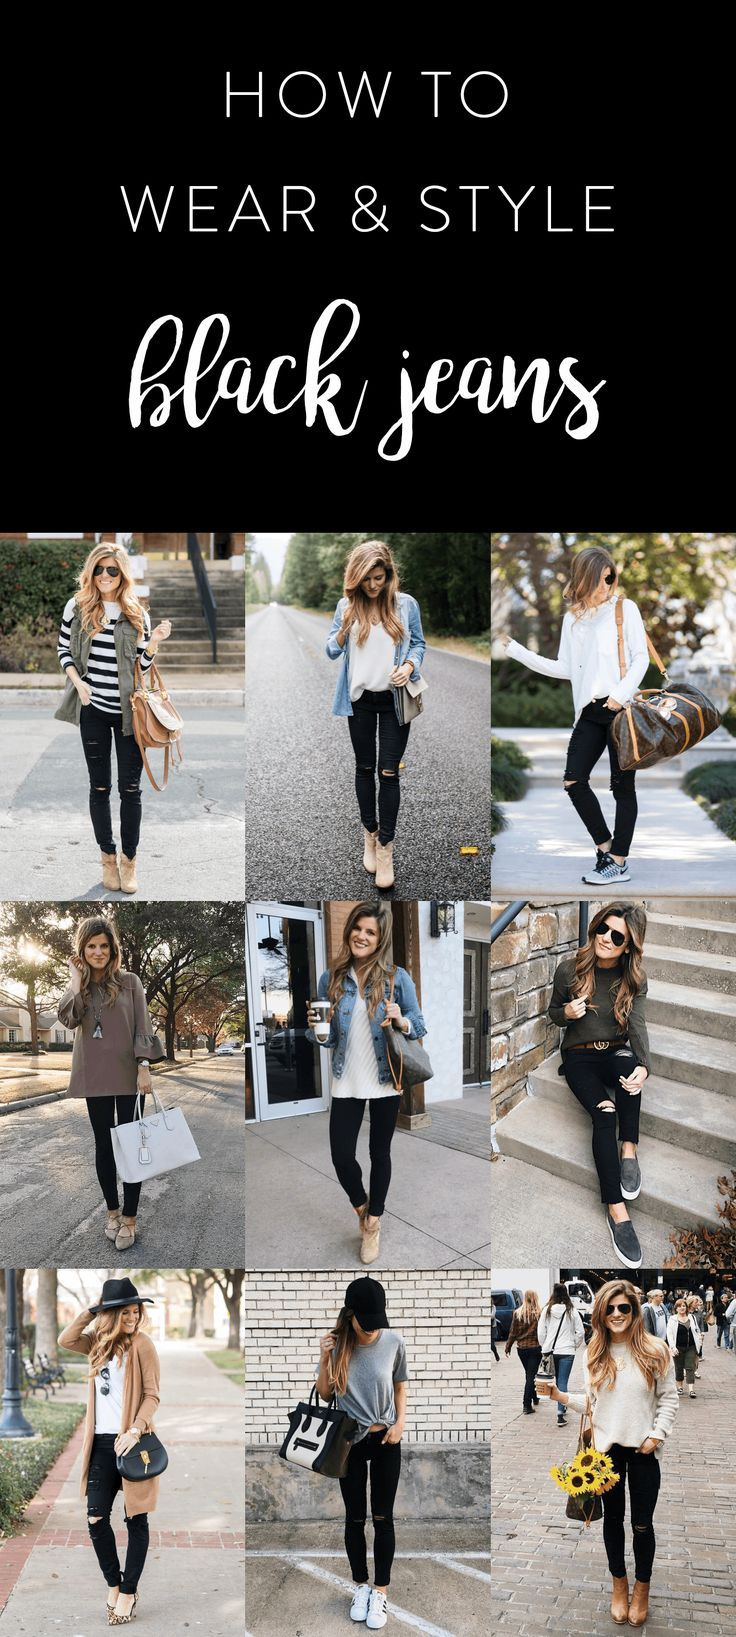 what to wear with black jeans, how to wear black jeans, black jeans outfit ideas, outfits with black jeans